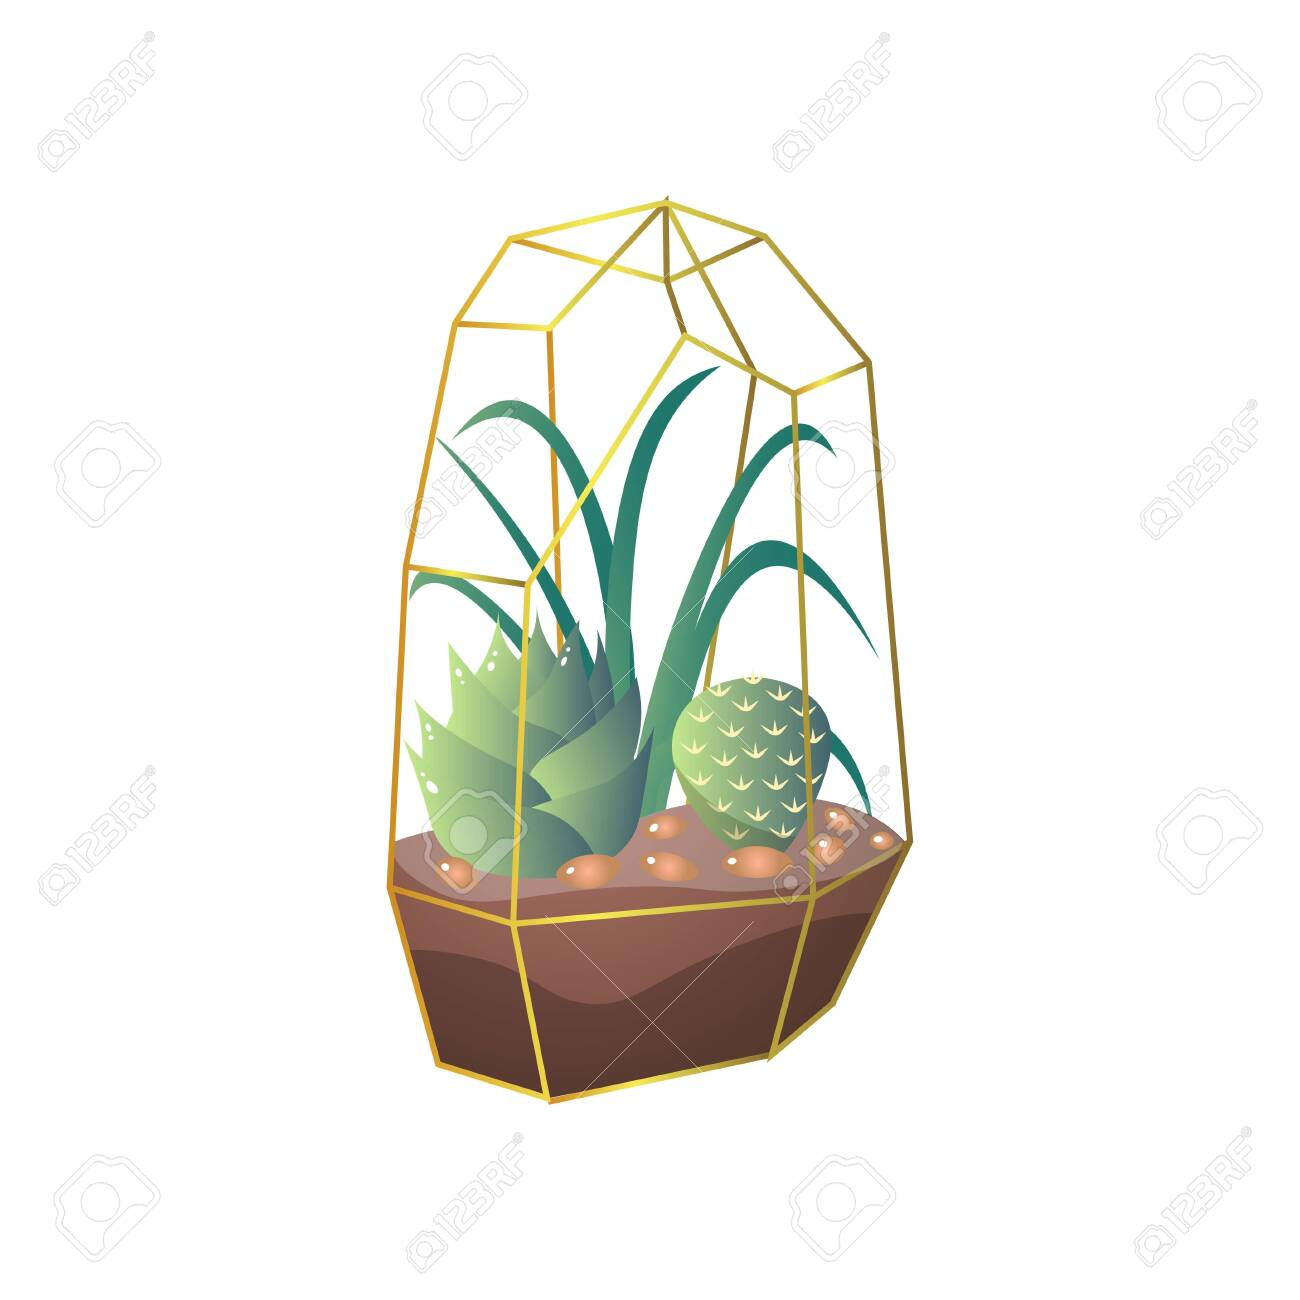 Green Succulent And Cactus Plant In Terrarium Ground Pot For Royalty Free Cliparts Vectors And Stock Illustration Image 123839663